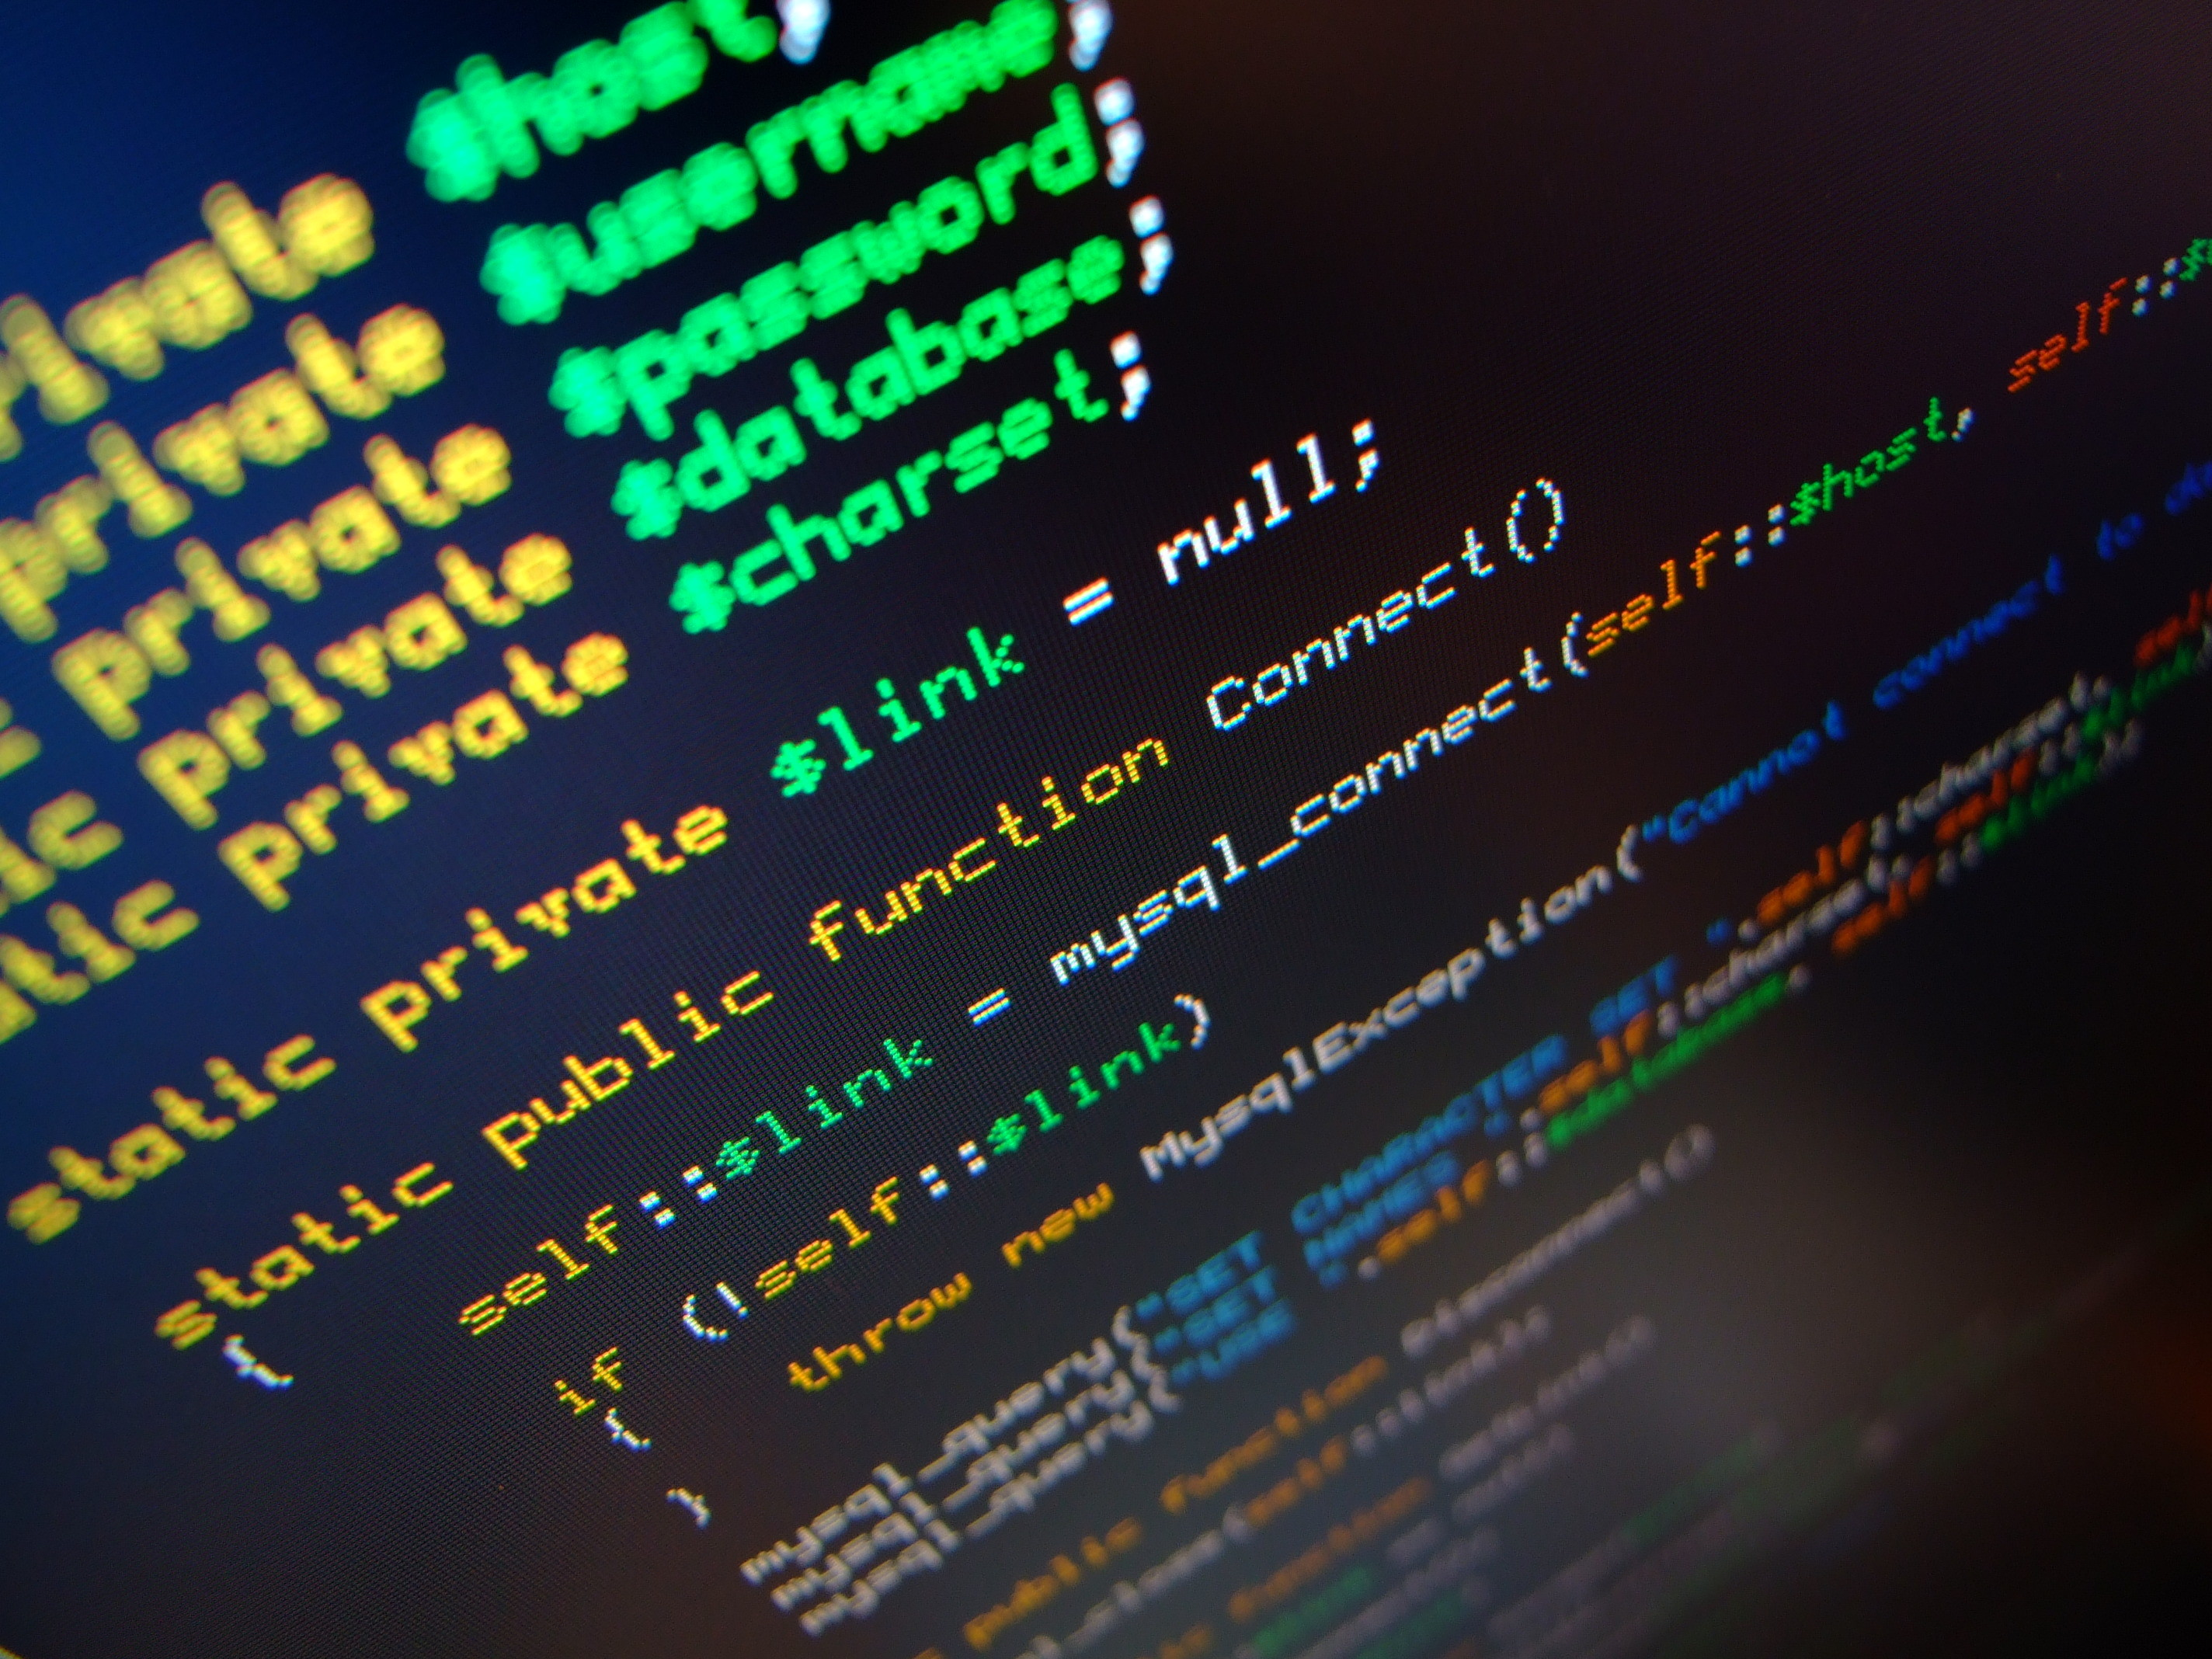 Coding Programming code tech computer letters words symbols numbers screen  monitor wallpaper